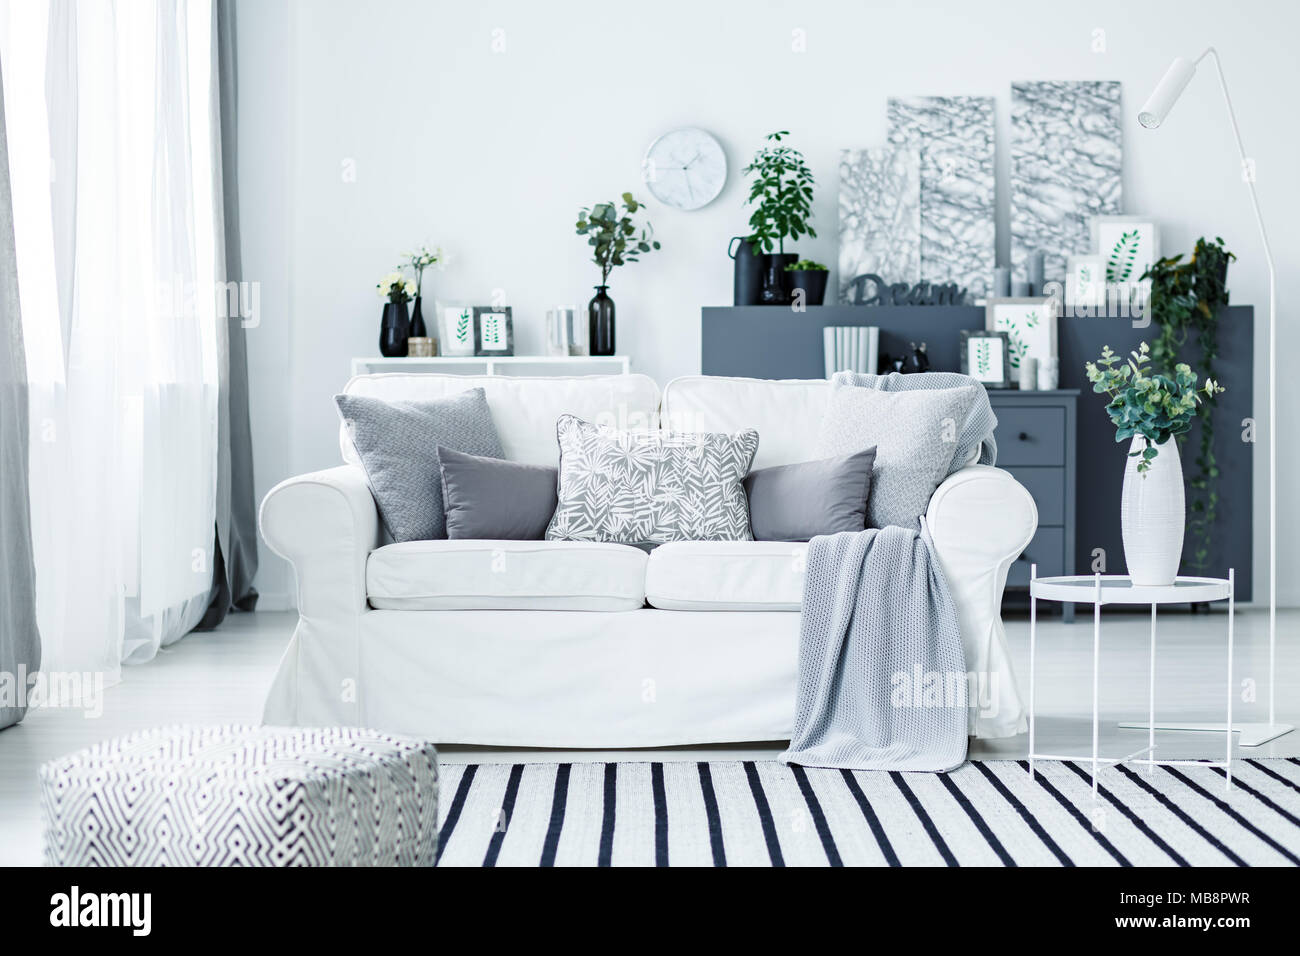 Excellent Cozy White Sofa And A Striped Rug In A Classy Modern Living Beatyapartments Chair Design Images Beatyapartmentscom